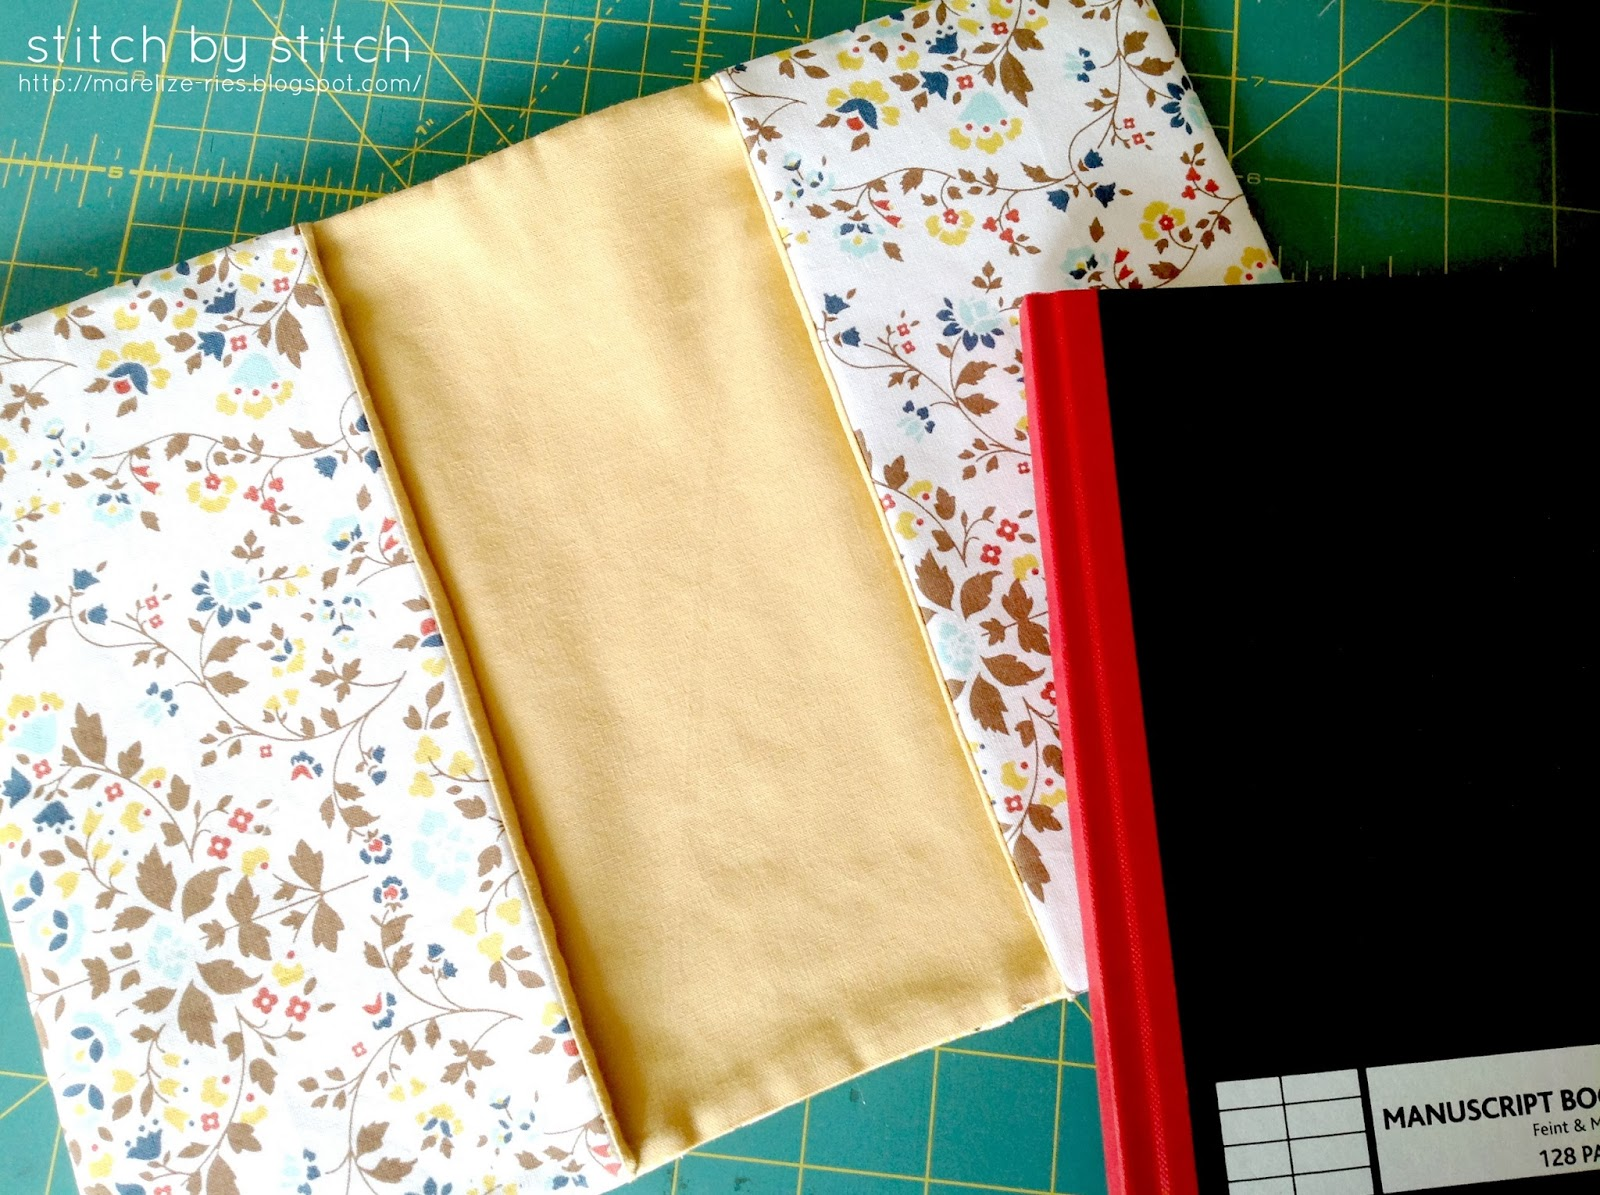 How To Make A Book Cover Out Of Fabric : Stitch by fabric book cover tutorial